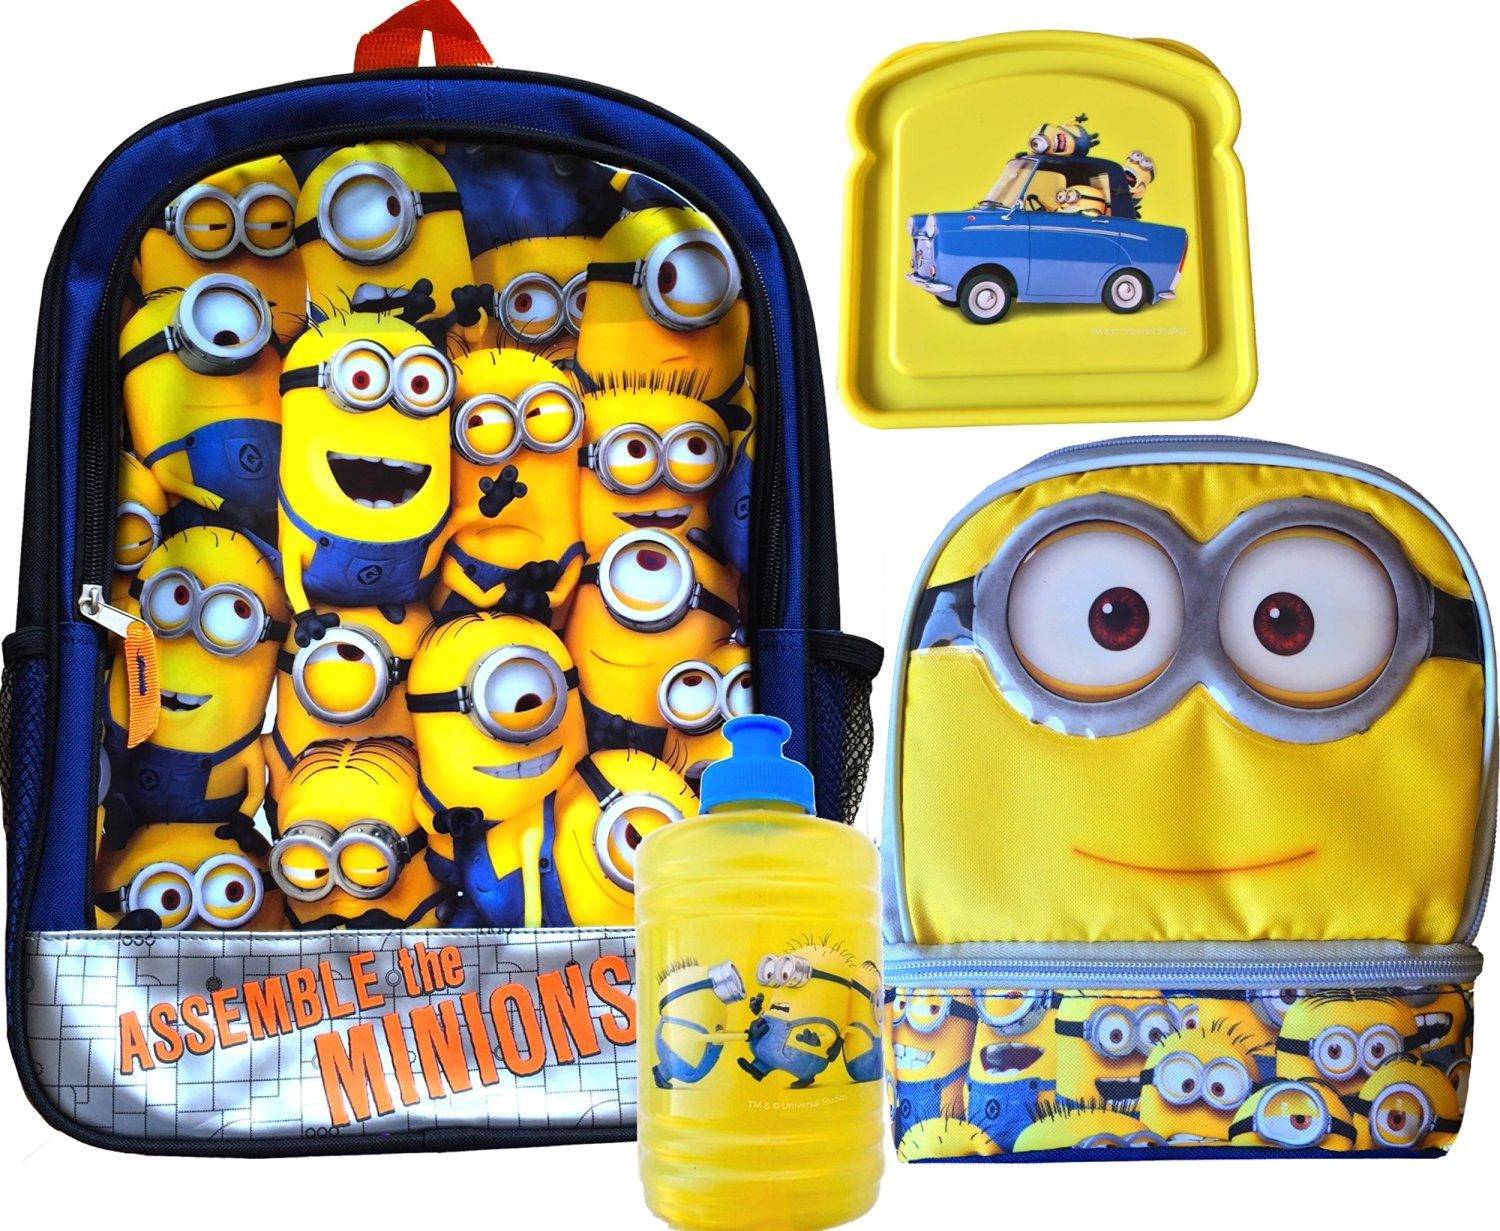 a6519b249d66 Buy Minions Movie Exclusive School Backpack with Minions 2 ...